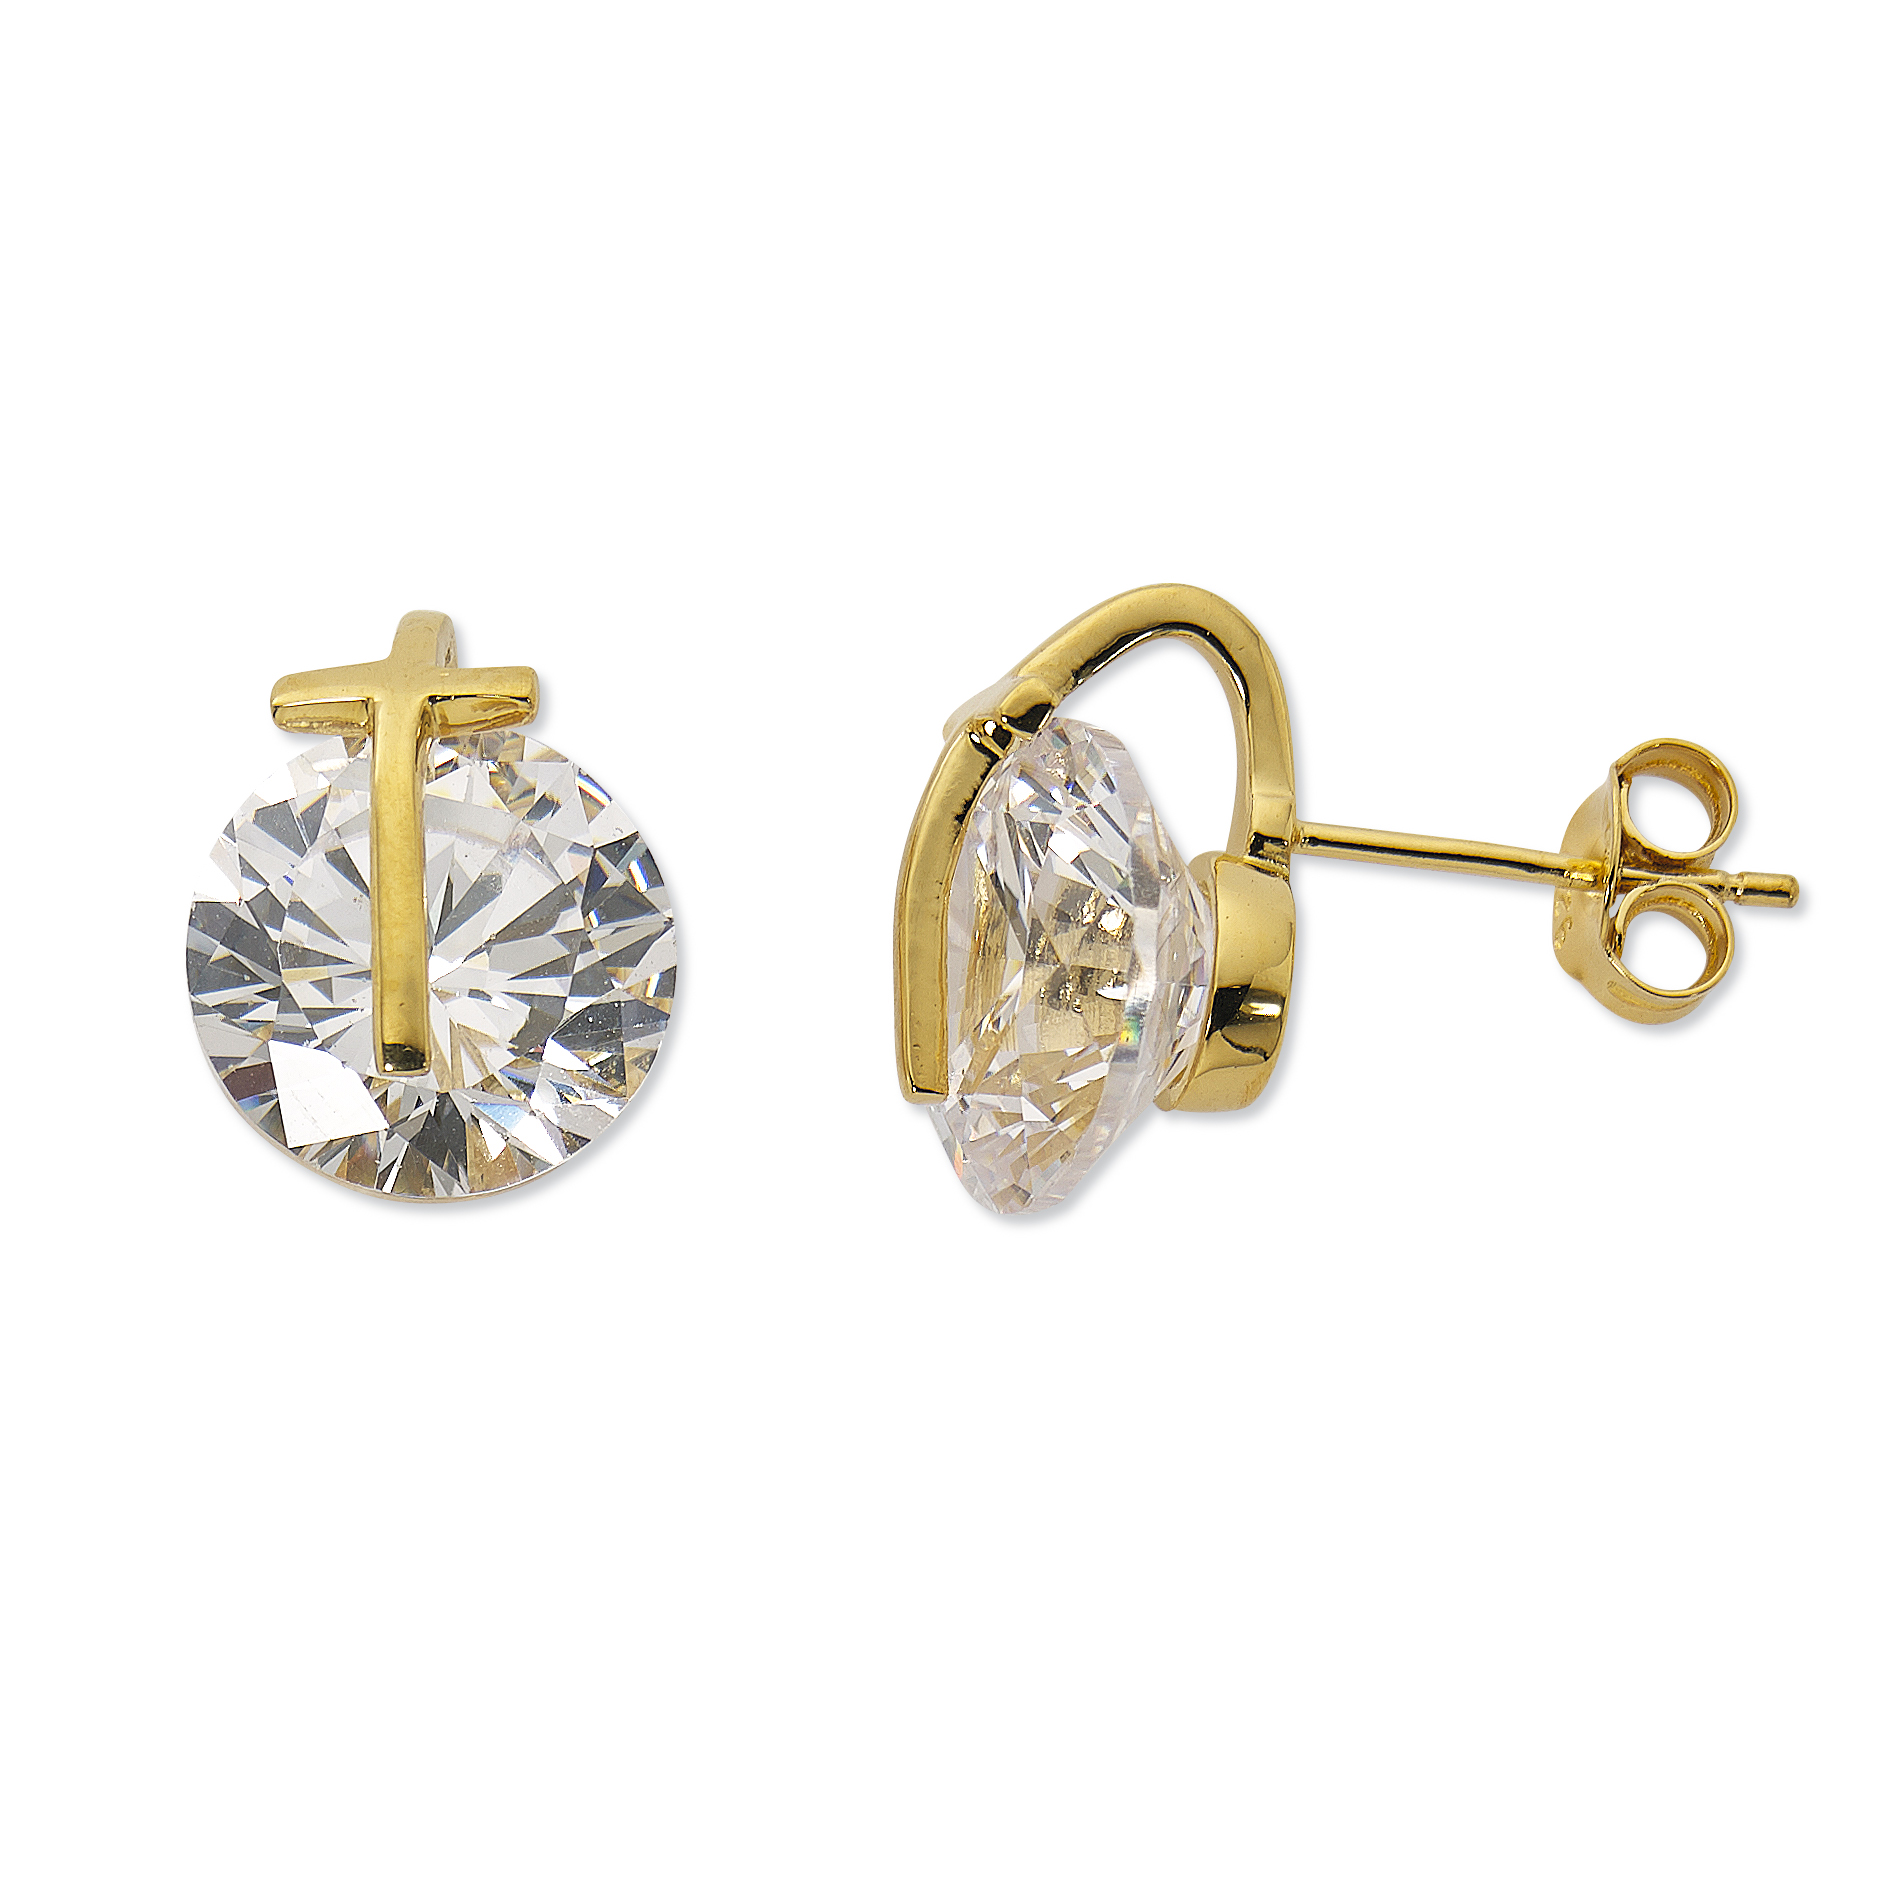 Primavera 24k Gold over Sterling Silver Cubic Zirconia with Cross Stud Earrings